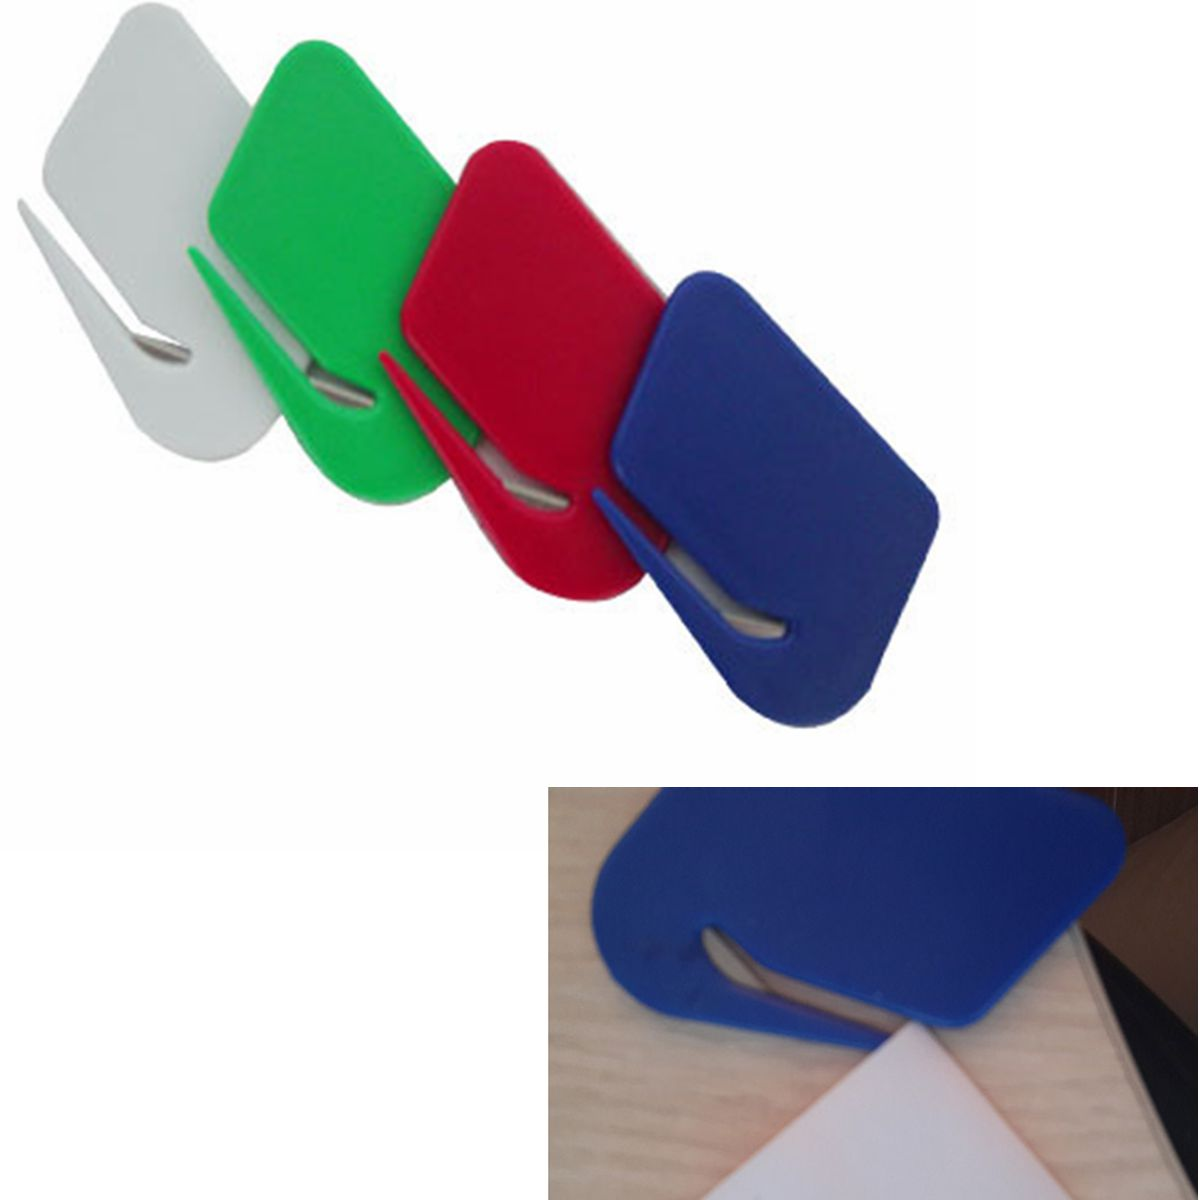 Plastic Letter Mail Envelope Opener Mini Letter Knife Office Equipment Safety Paper Guarded Cutter Blade Random Color(China (Mainland))